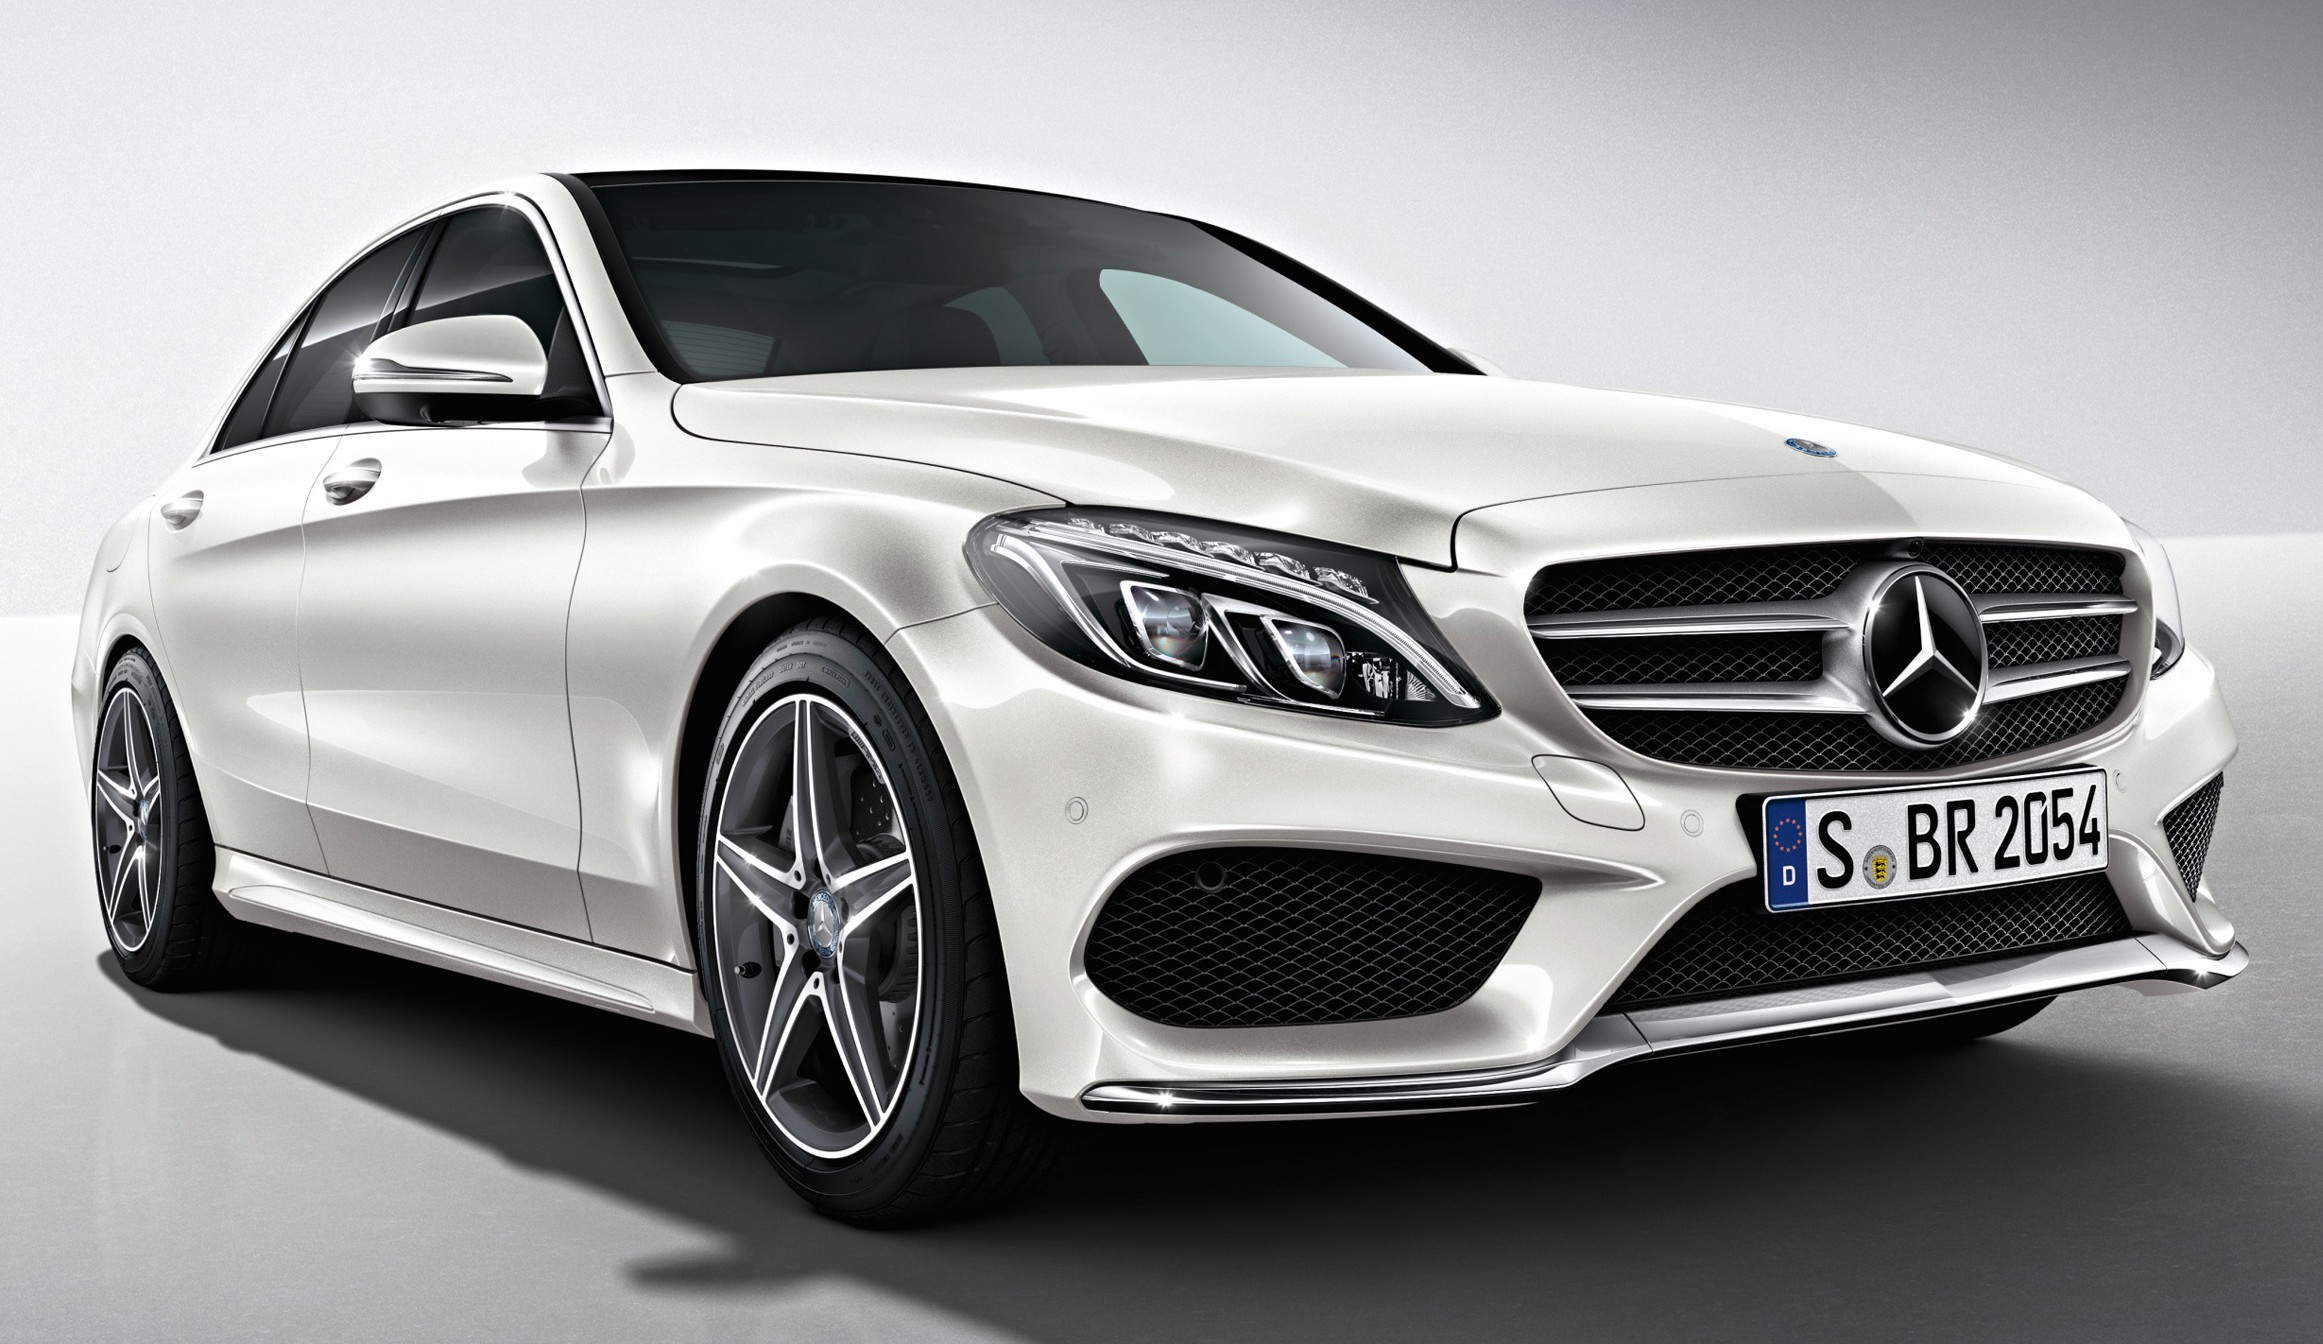 mercedes benz m 39 sia drops c class prices c200 now from rm248k ckd c250 amg line launched rm288k. Black Bedroom Furniture Sets. Home Design Ideas